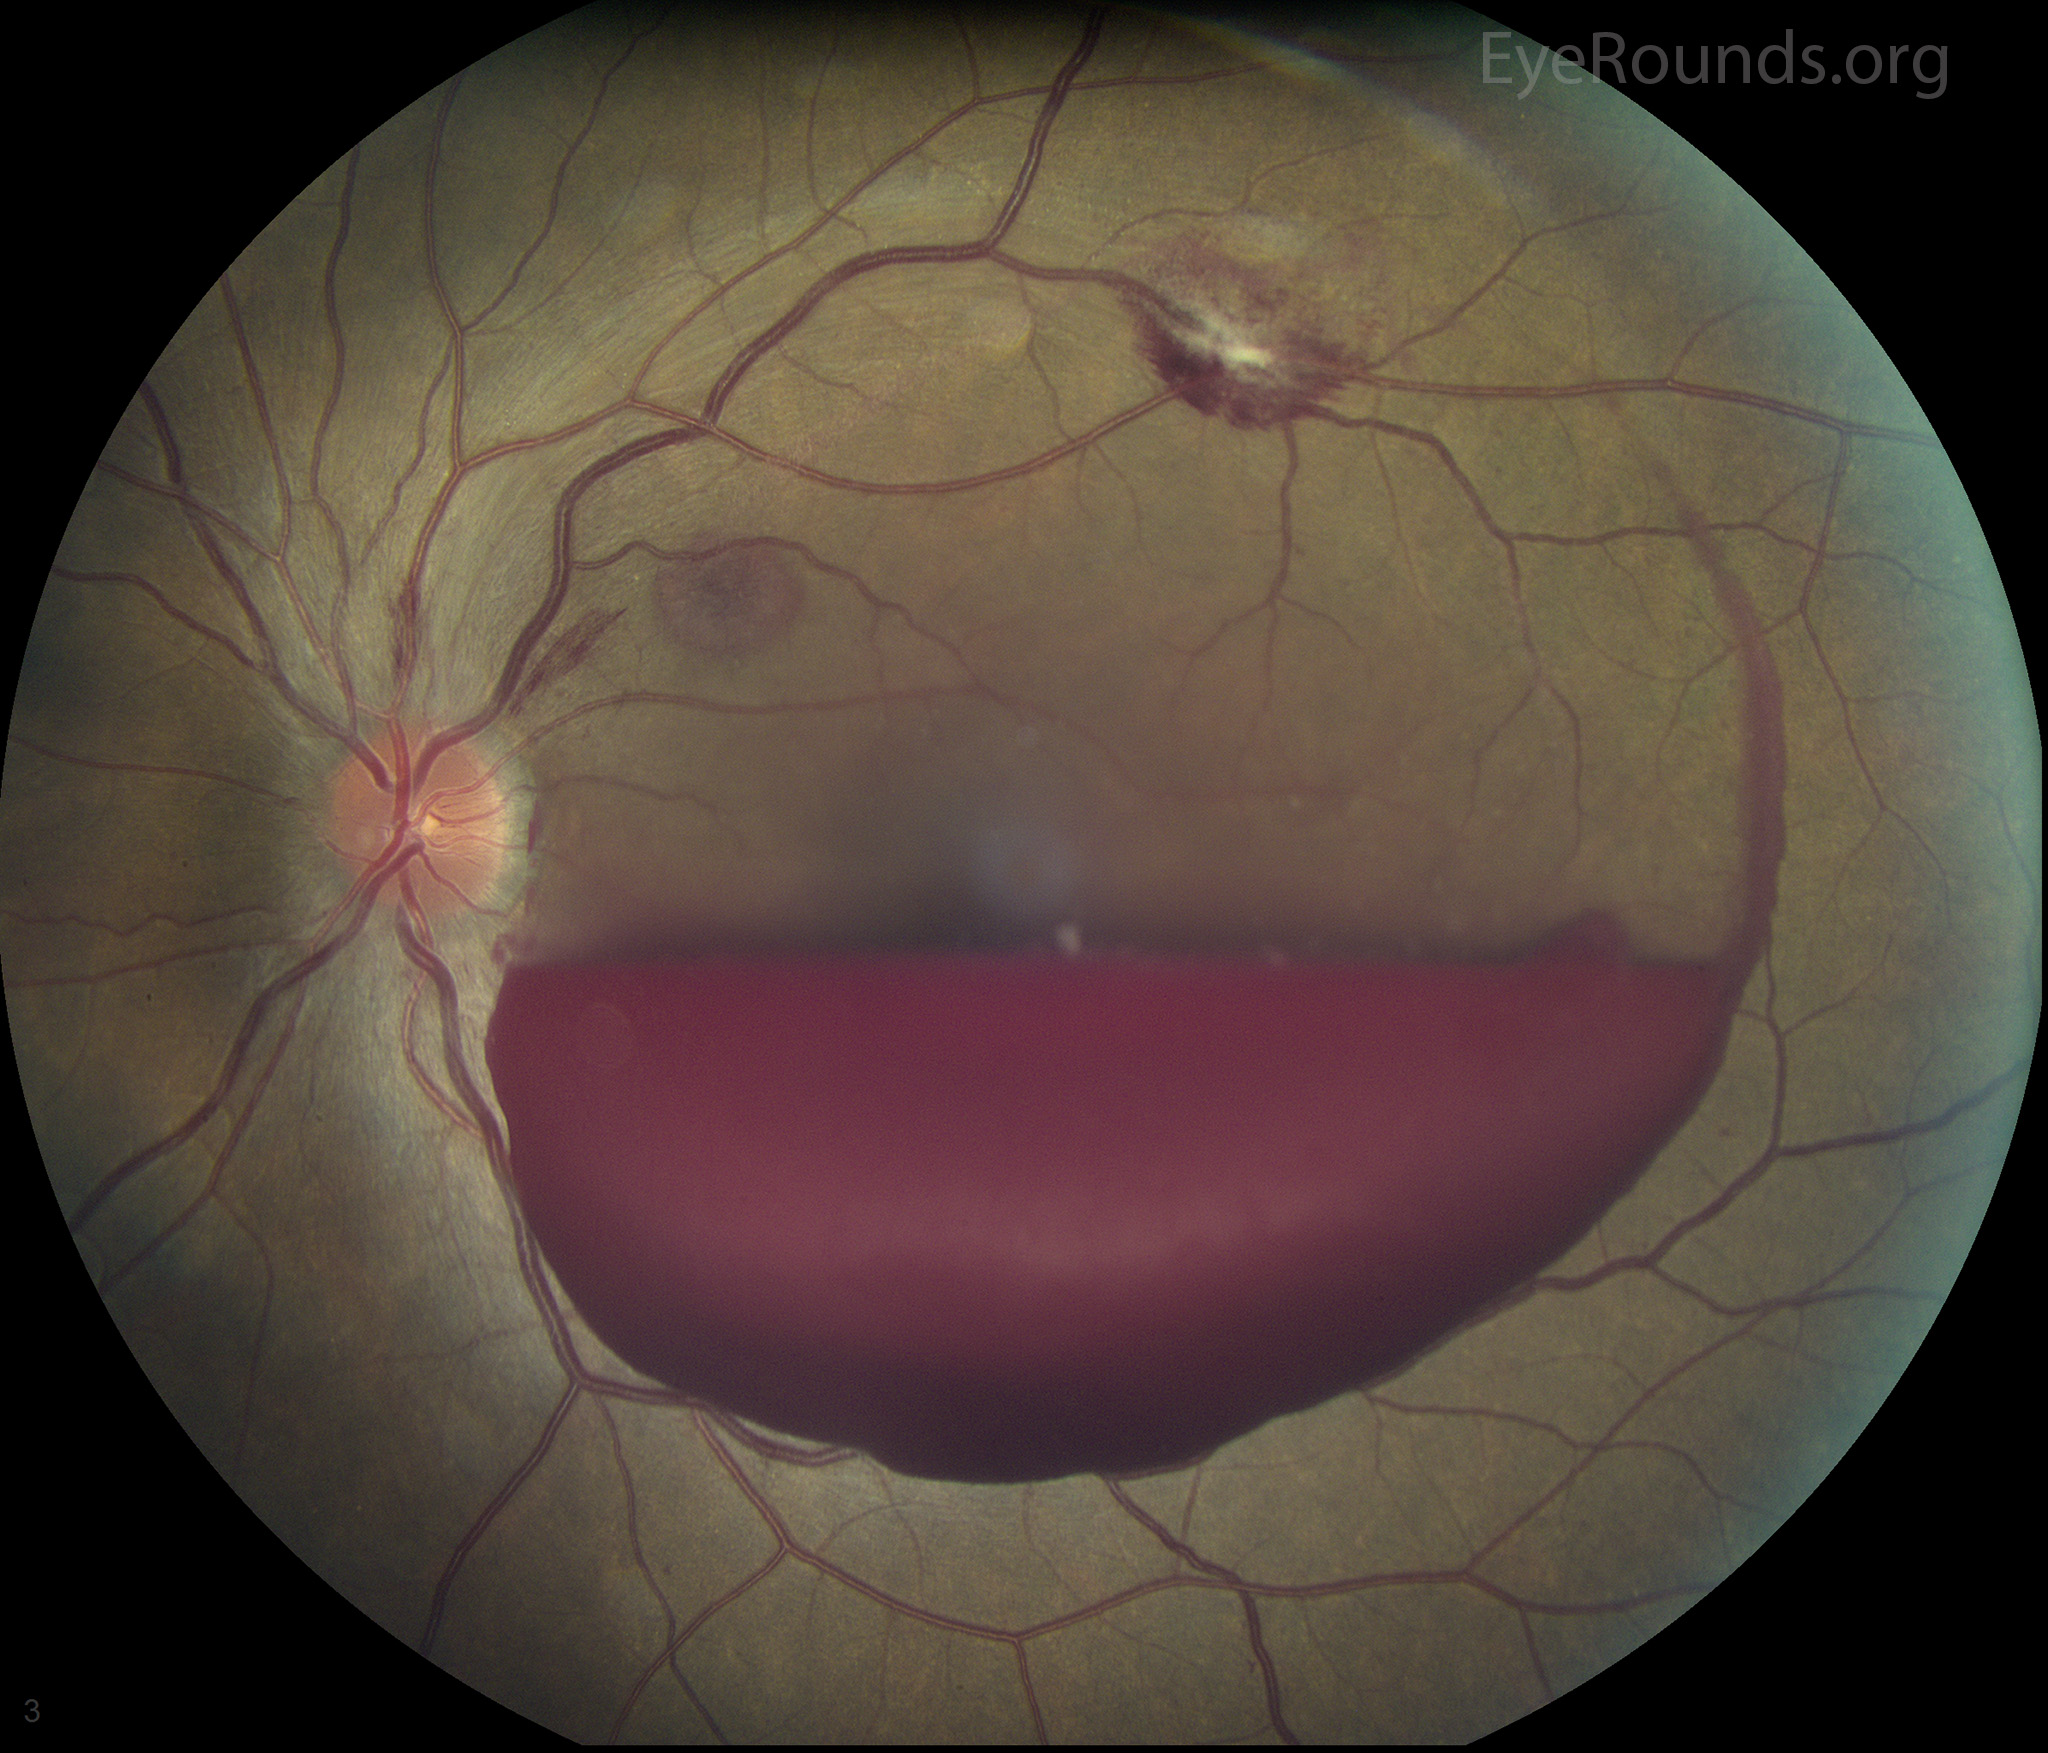 Image Result For After Cataract Surgery